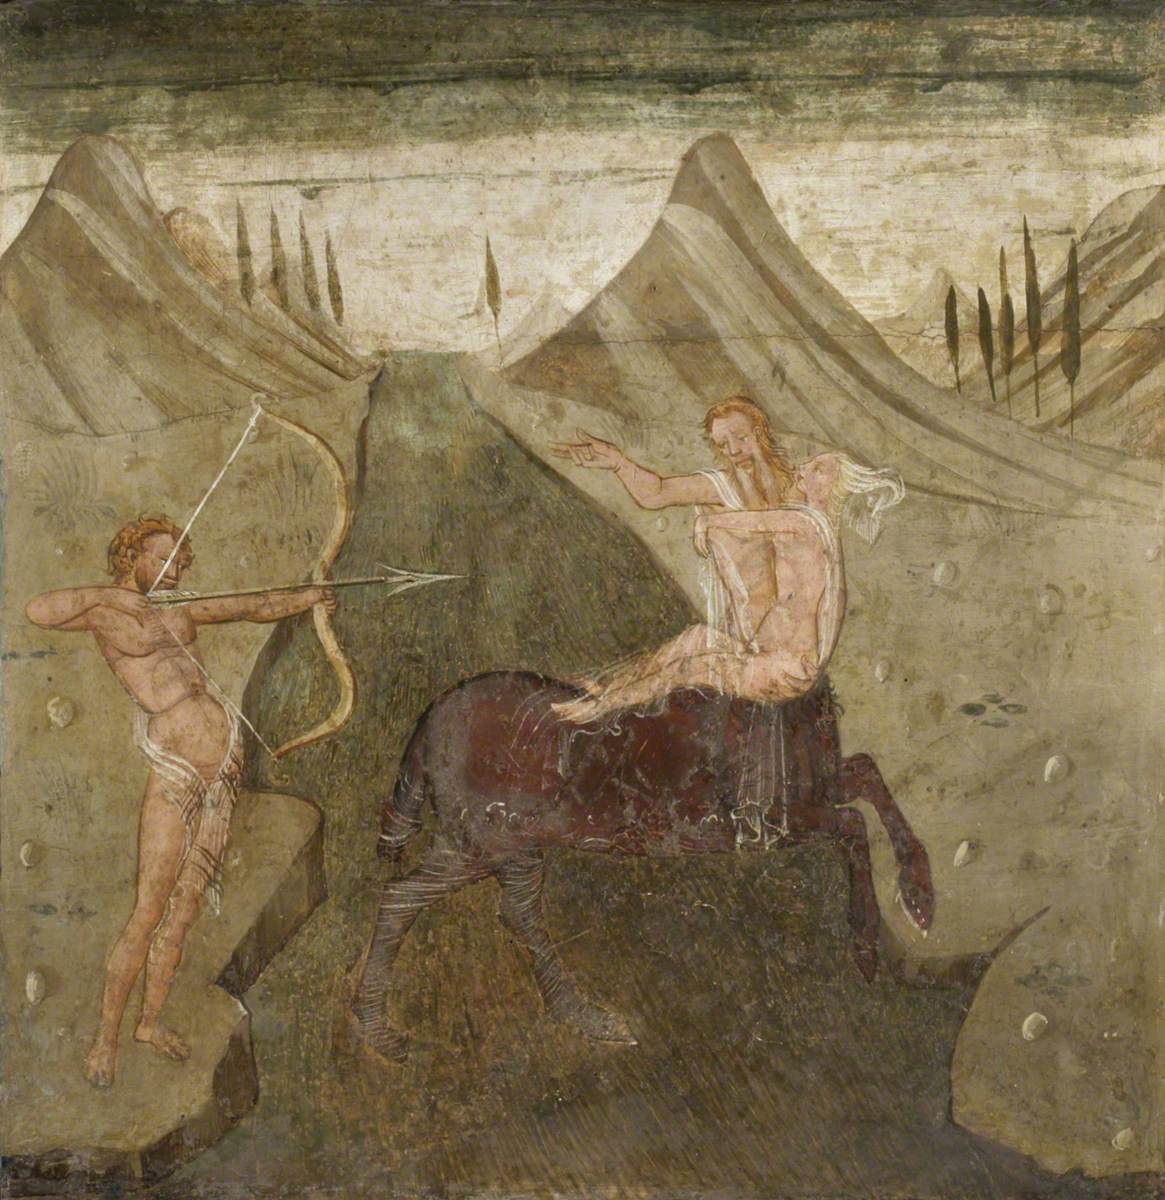 The Rape of Deianeira with Hercules Drawing His Bow at Nessus